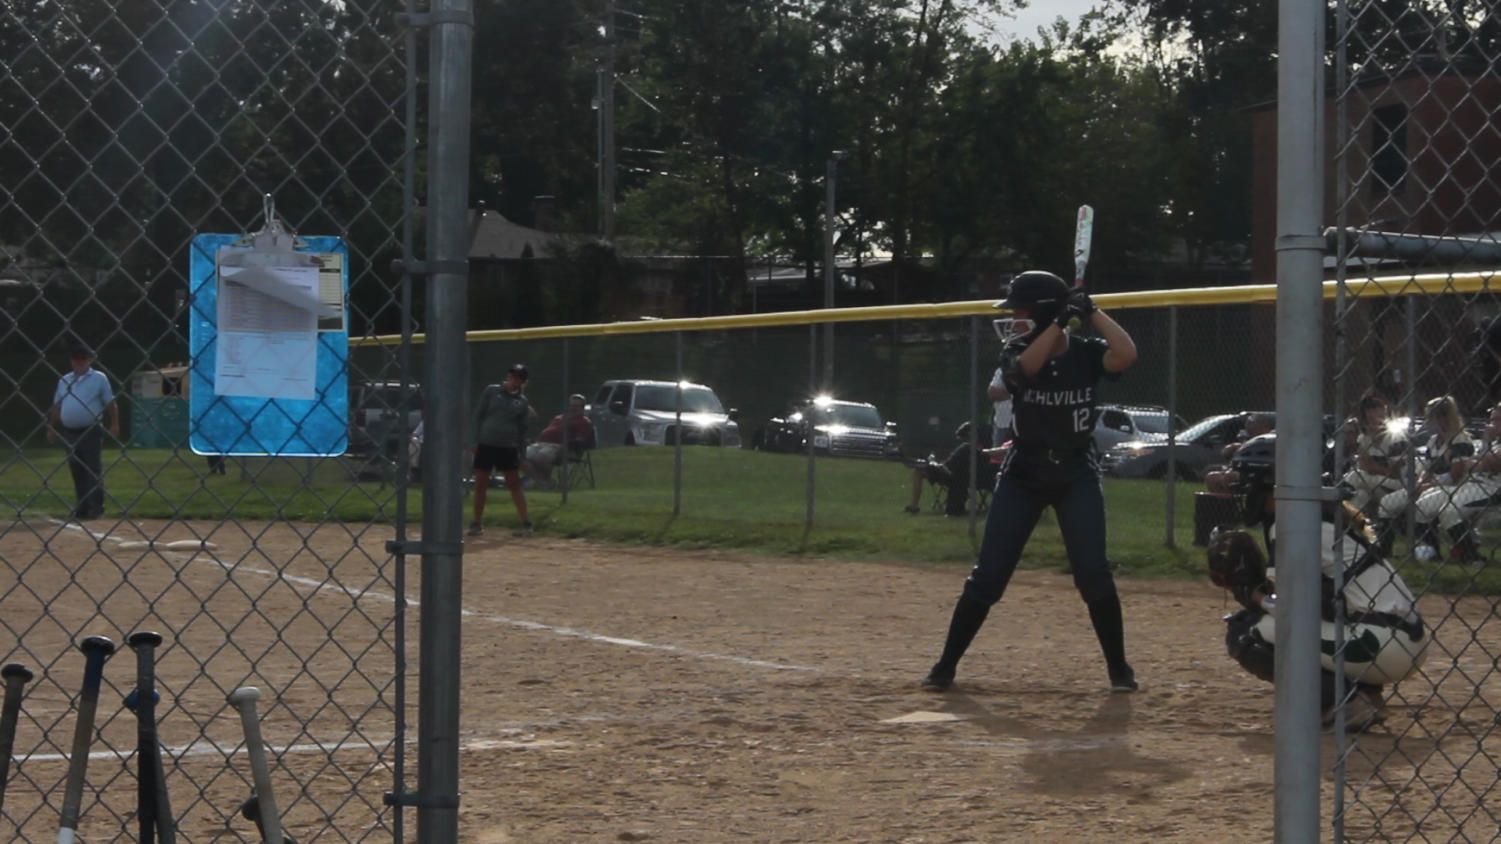 Taylor Kordik batting against Lindbergh.